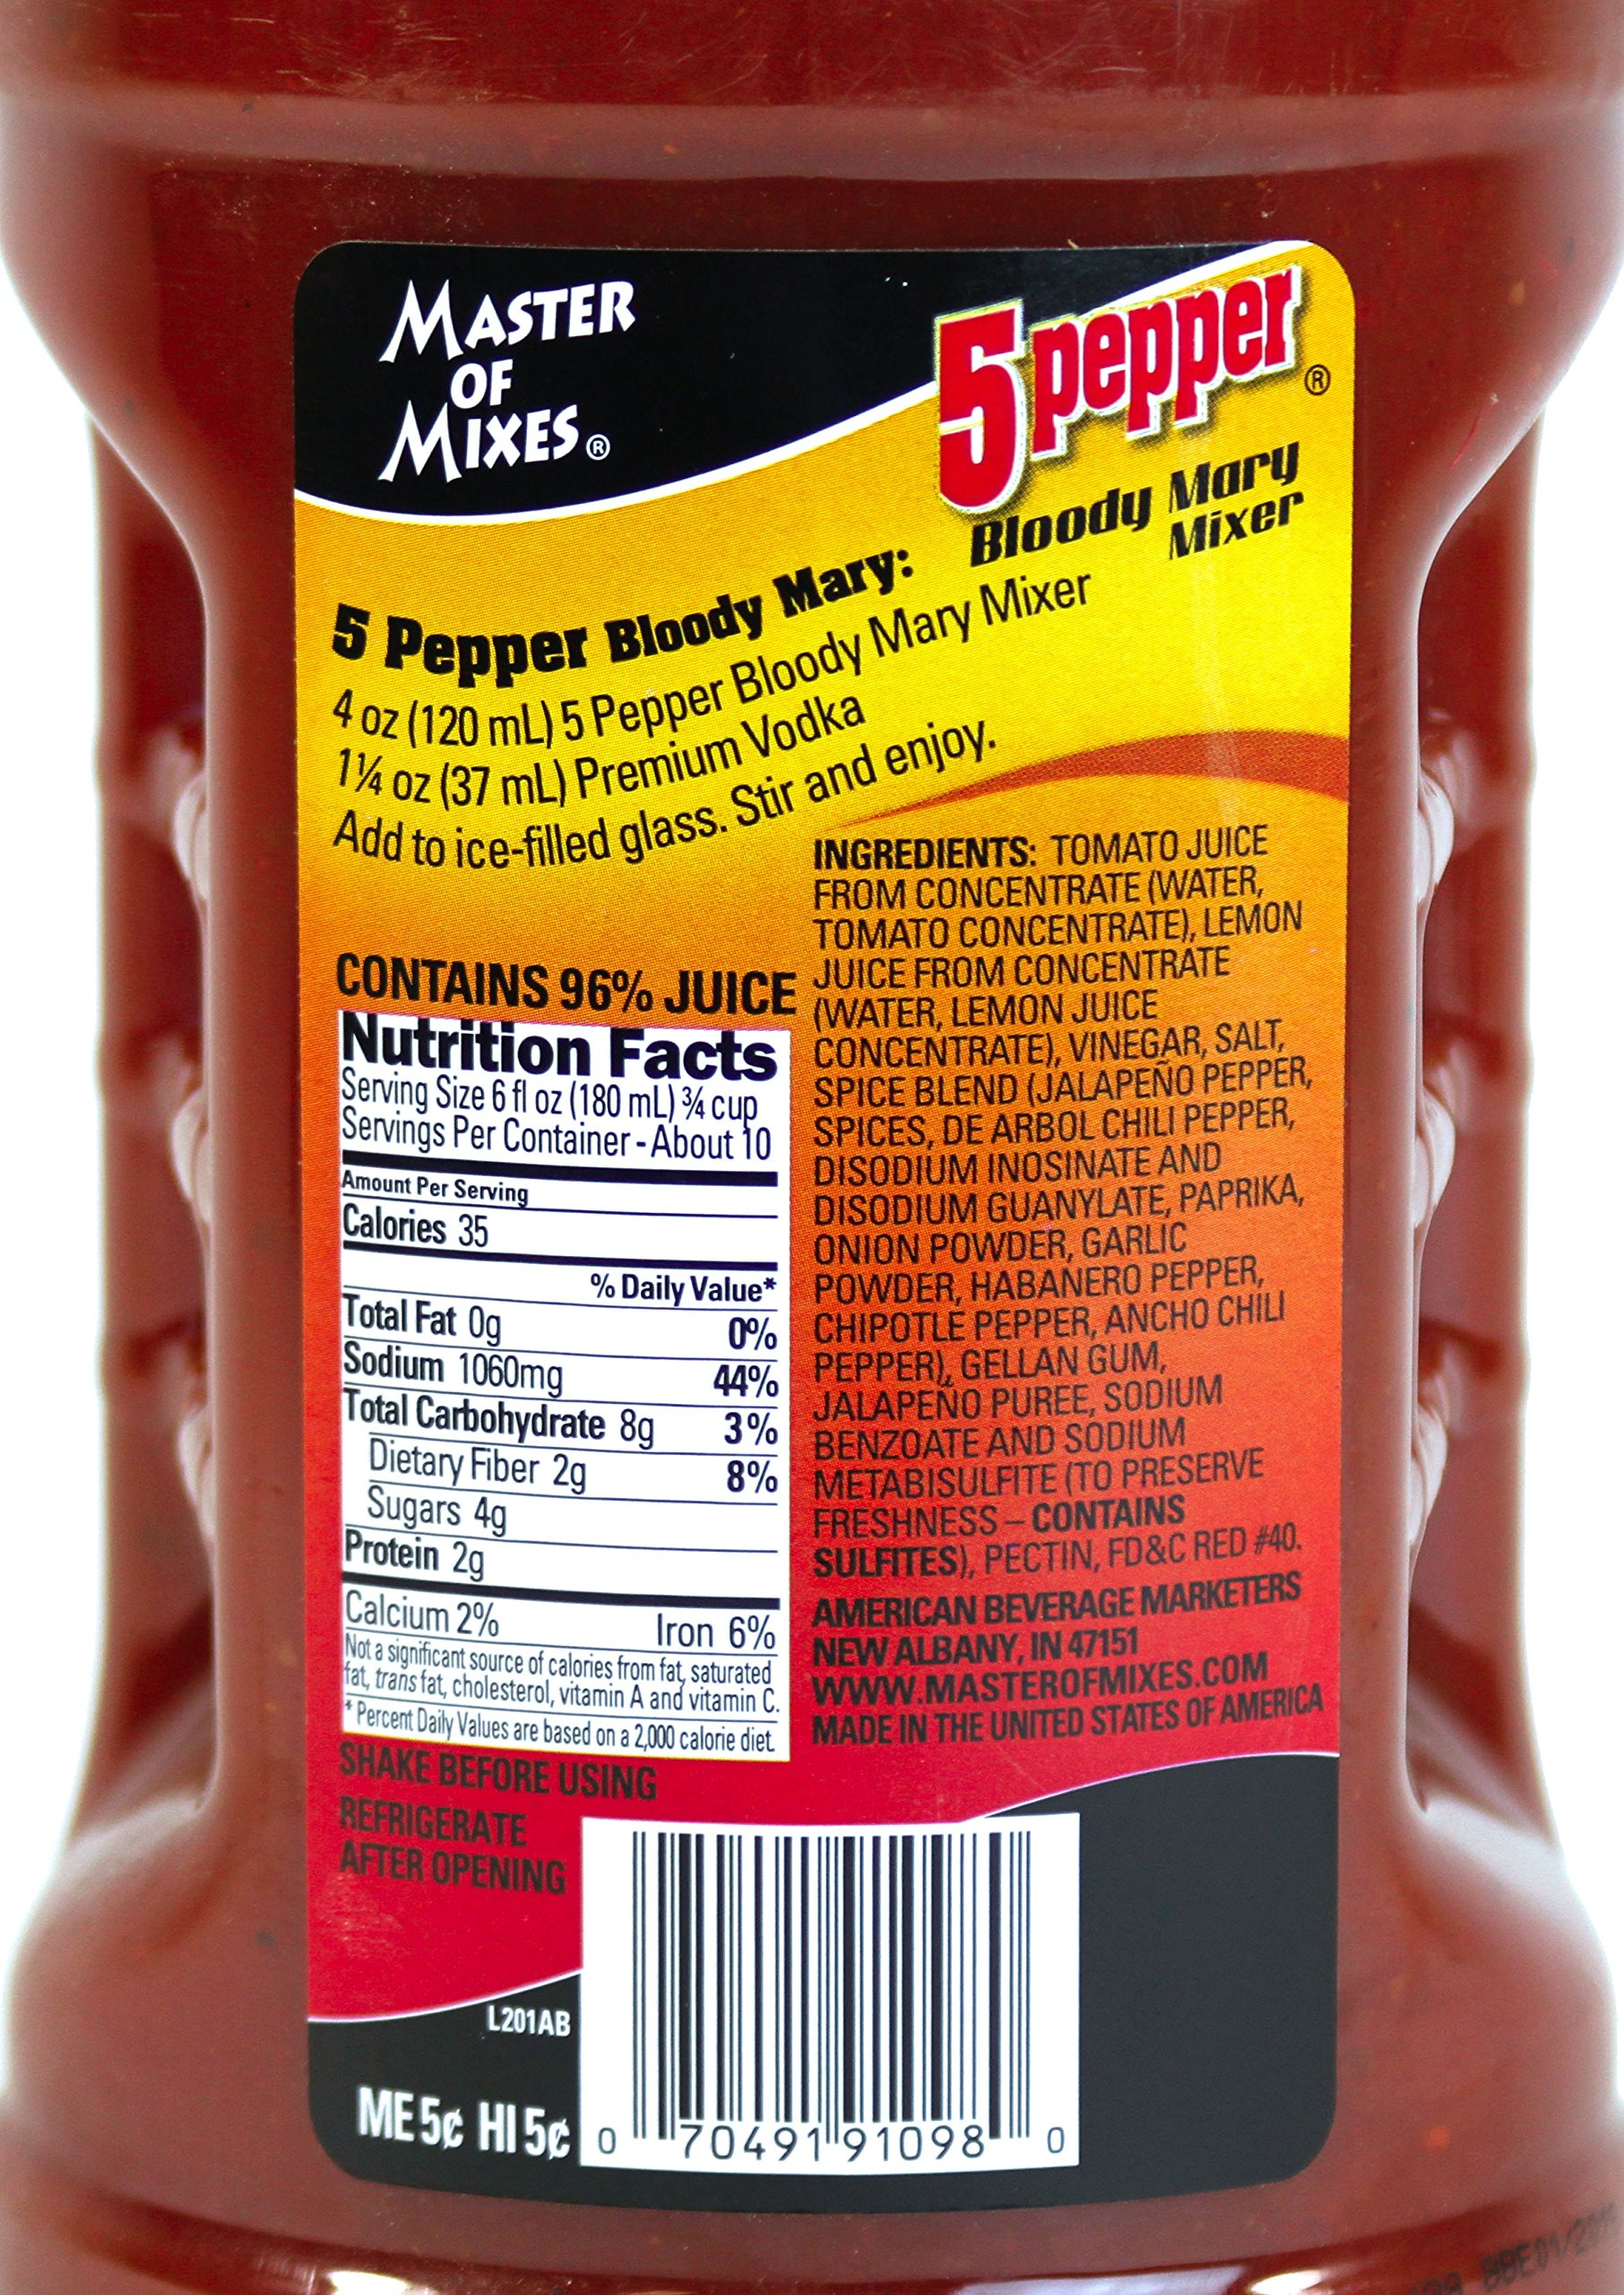 Master of Mixes 5 Pepper Extra Spicy Bloody Mary Drink Mix, Ready To Use, 1.75 Liter Bottle (59.2 Fl Oz), Pack of 3 by Master of Mixes (Image #4)